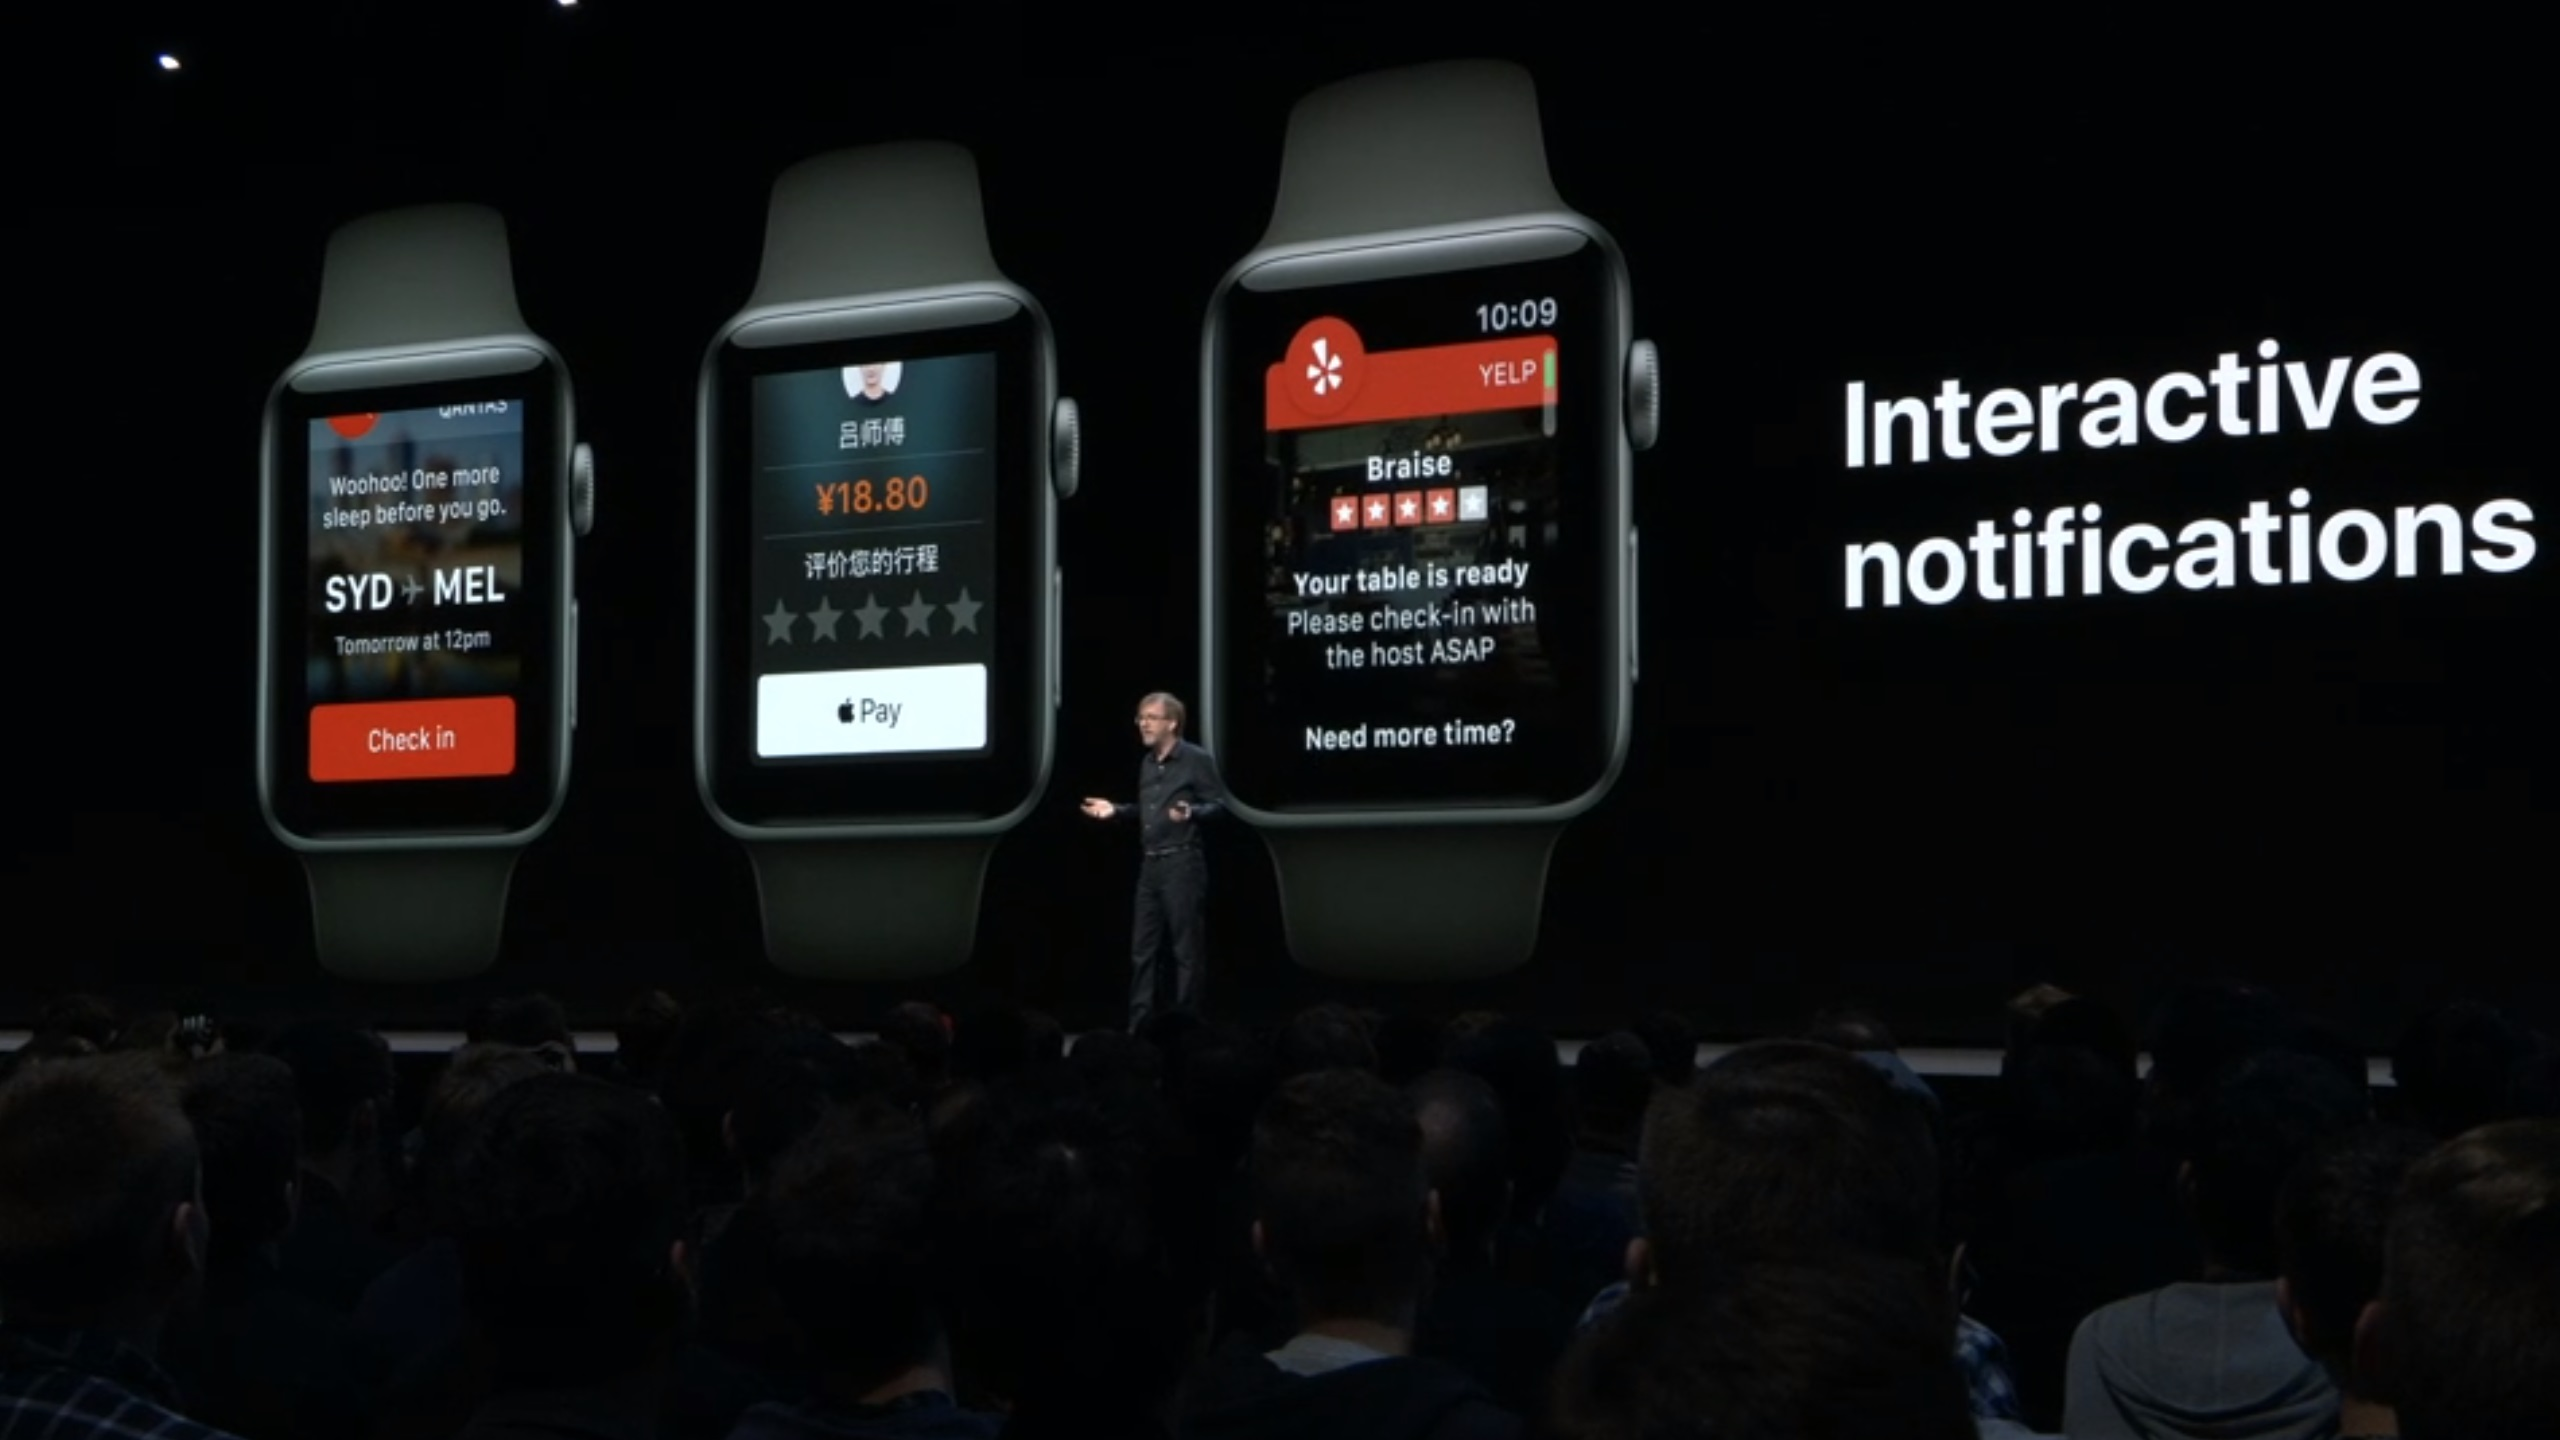 interative-notifications-in-watchos-5